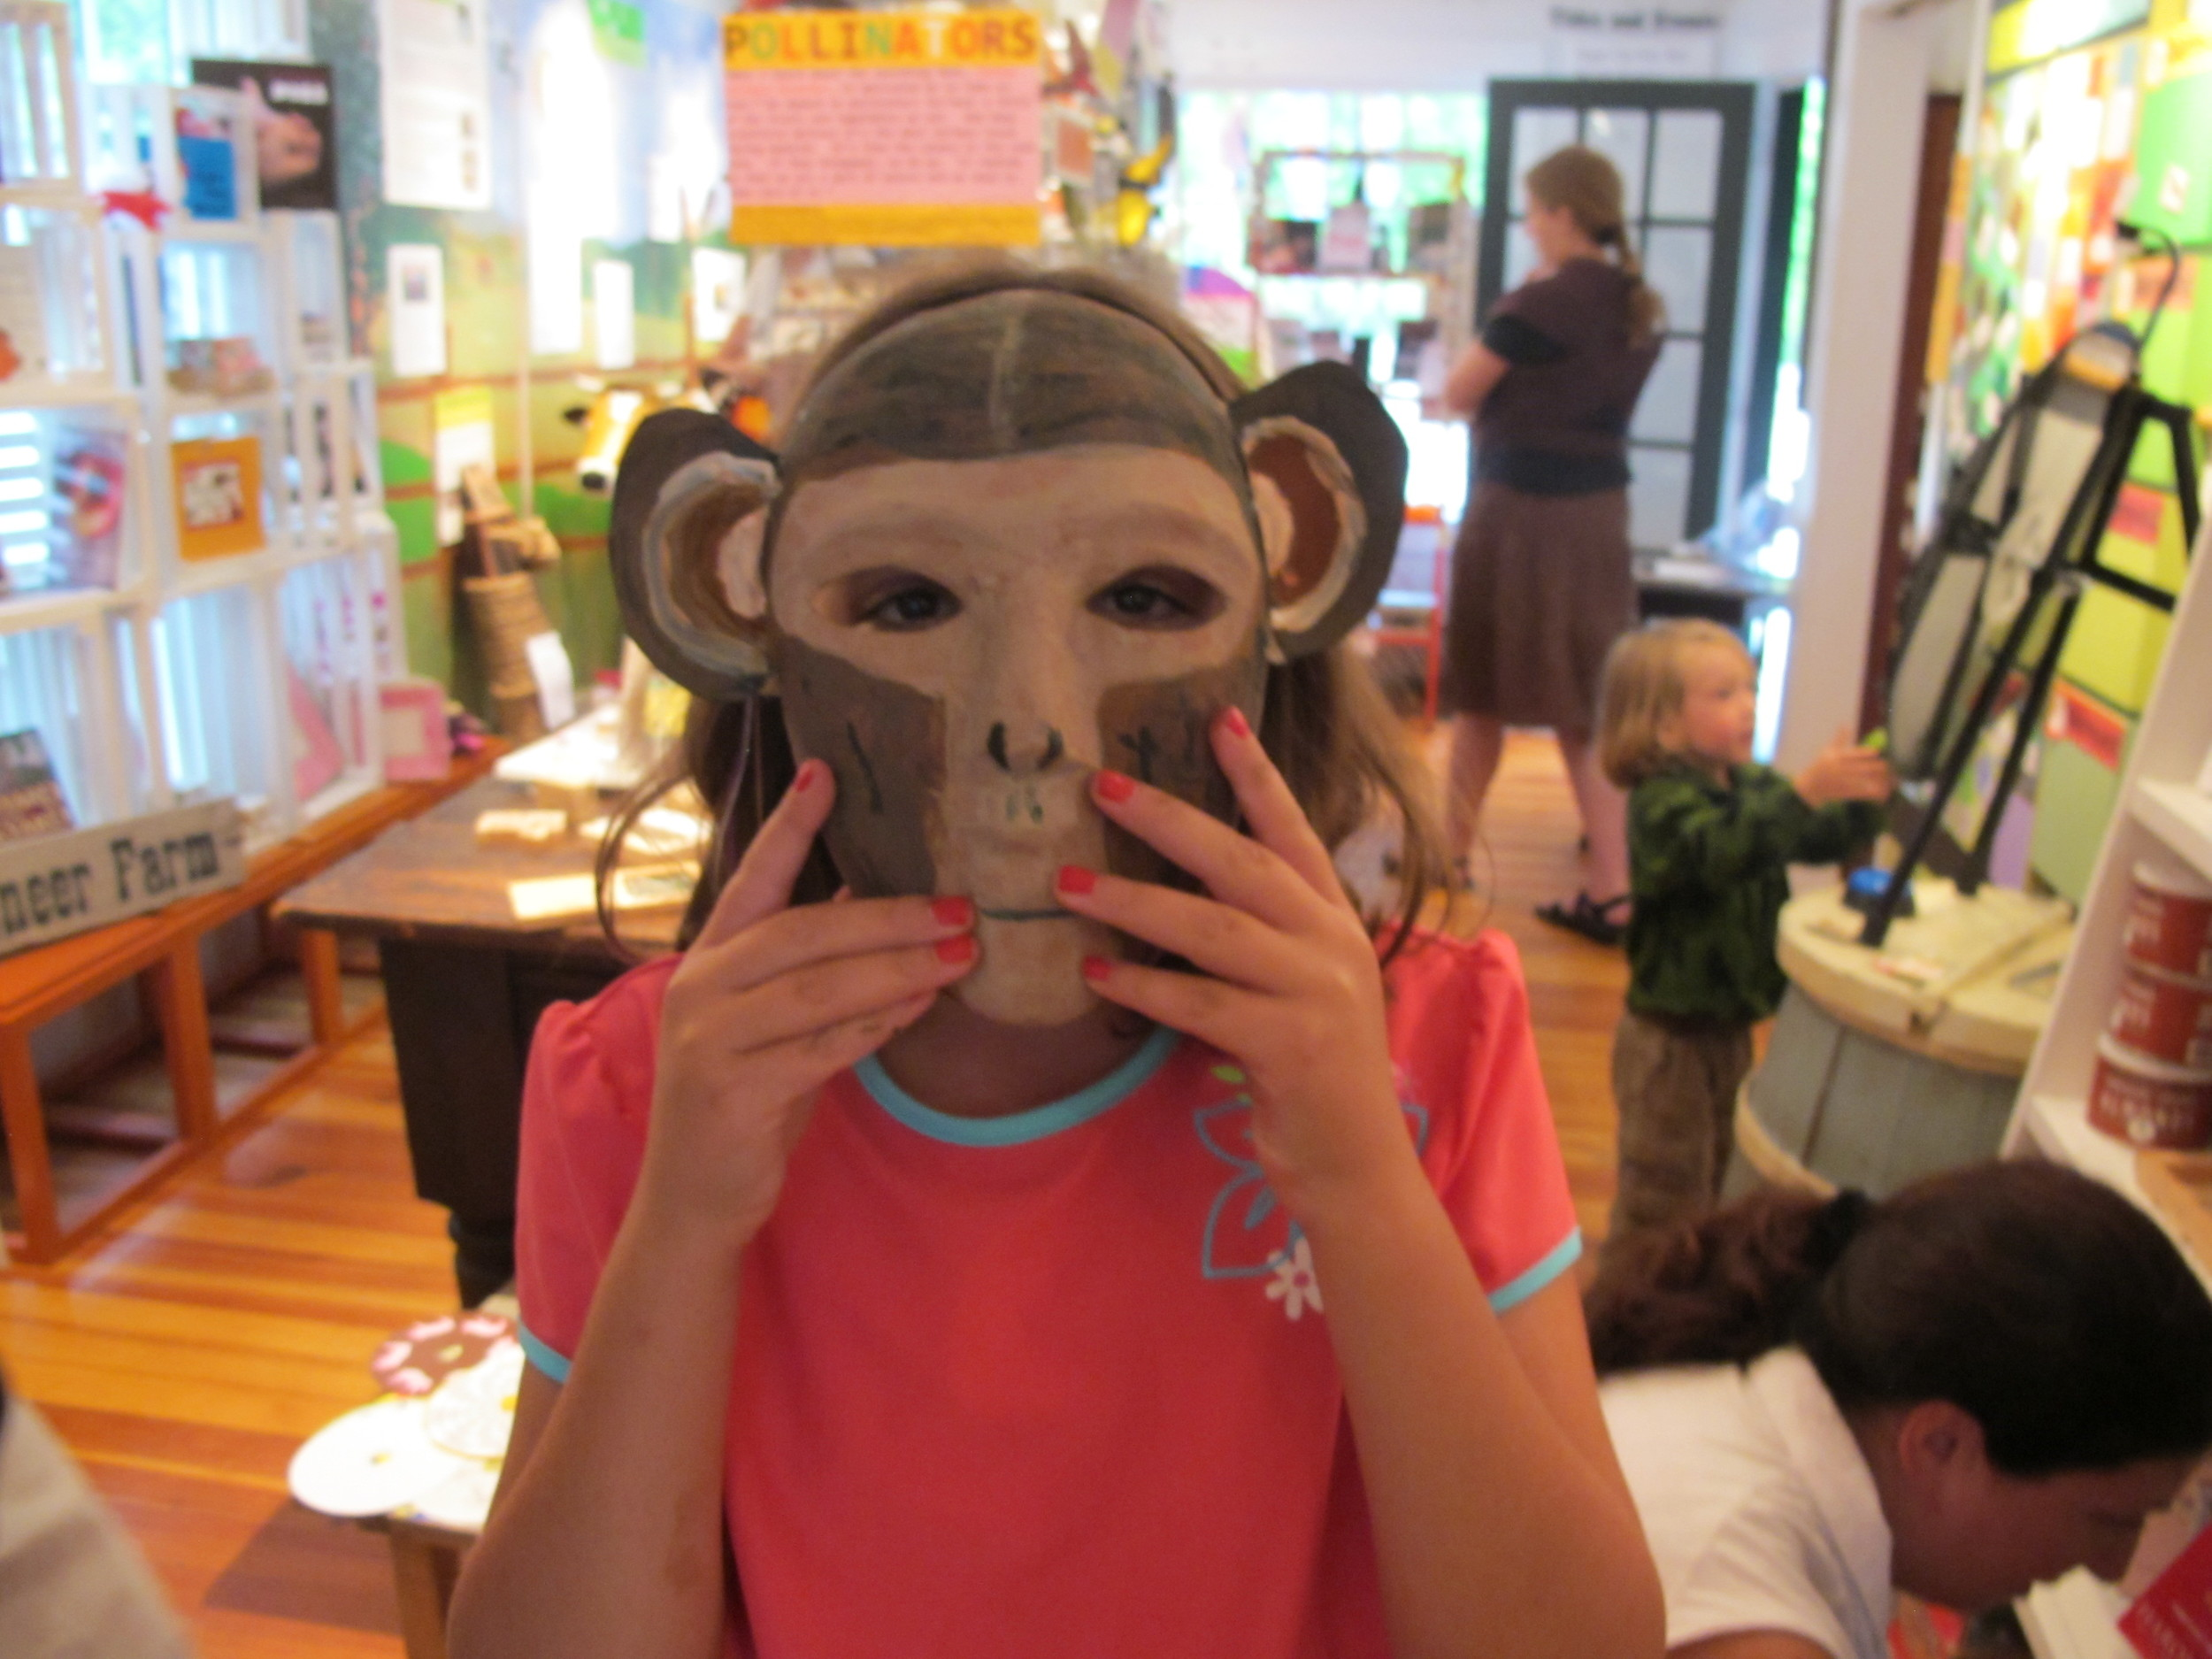 Kids who took part in our Jane Goodall Day activities at the Notebook painted chimp masks, created shadow puppets and celebrated the life of the great naturalist.